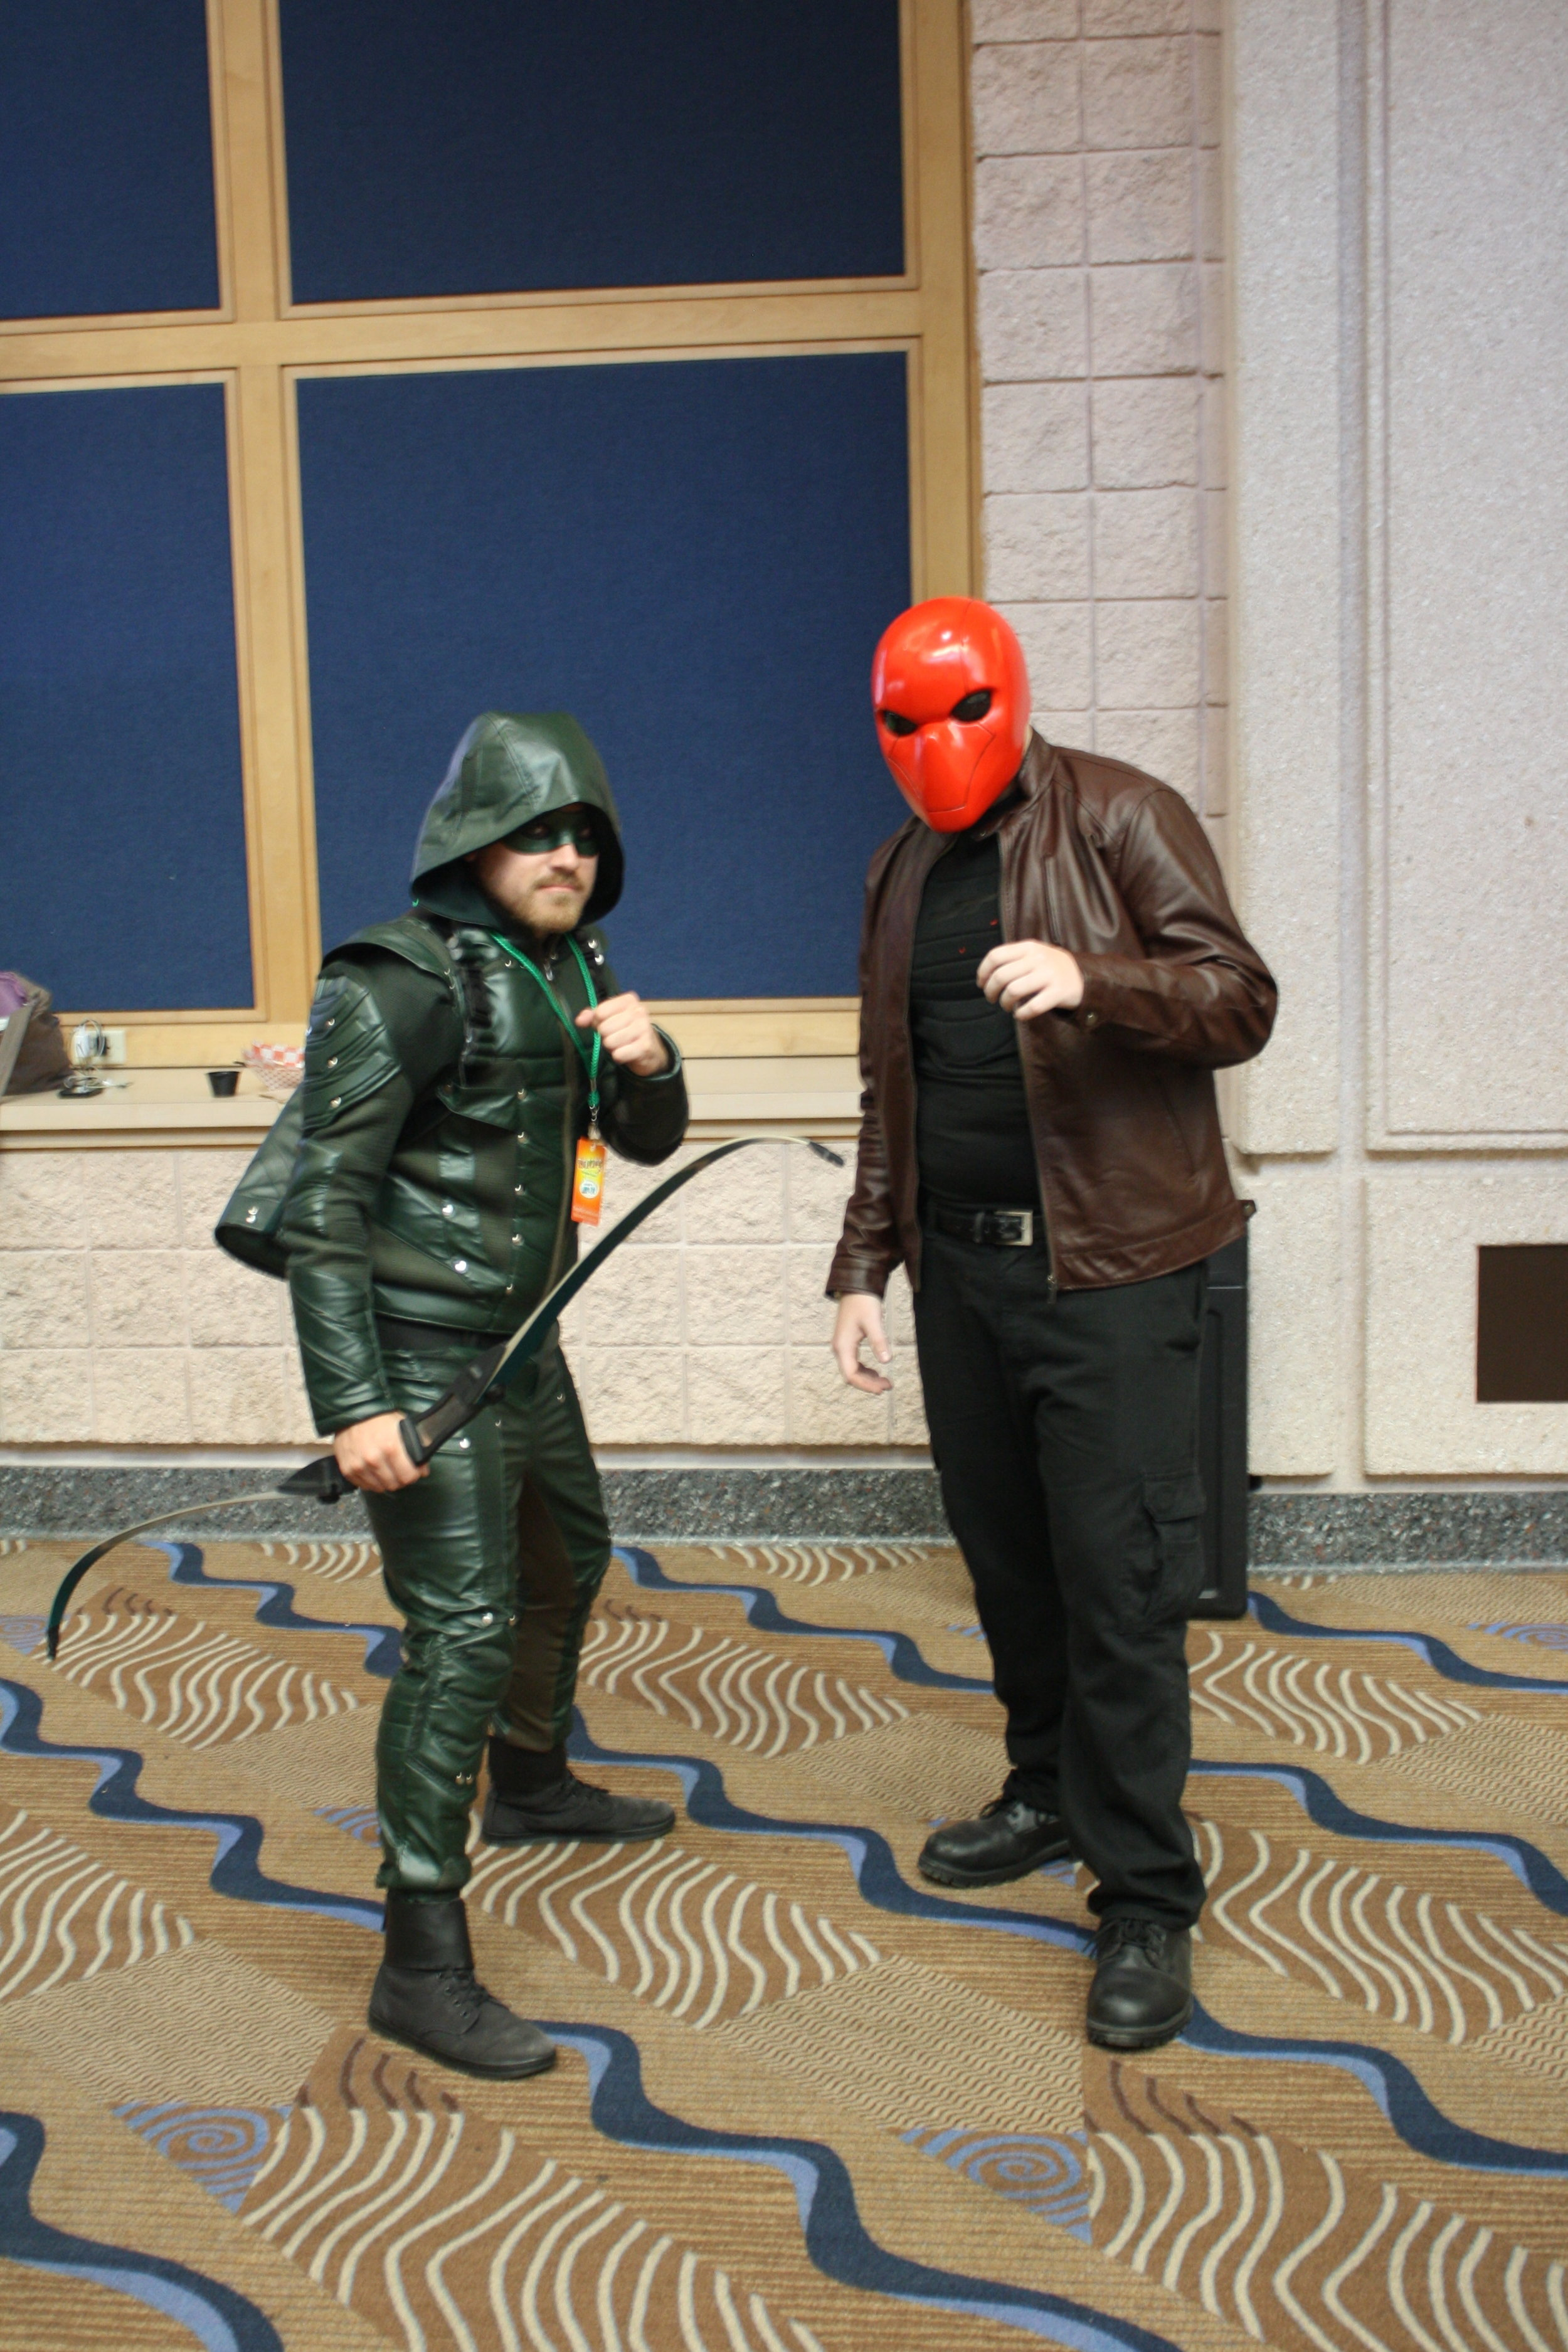 The Arrow and Redhood